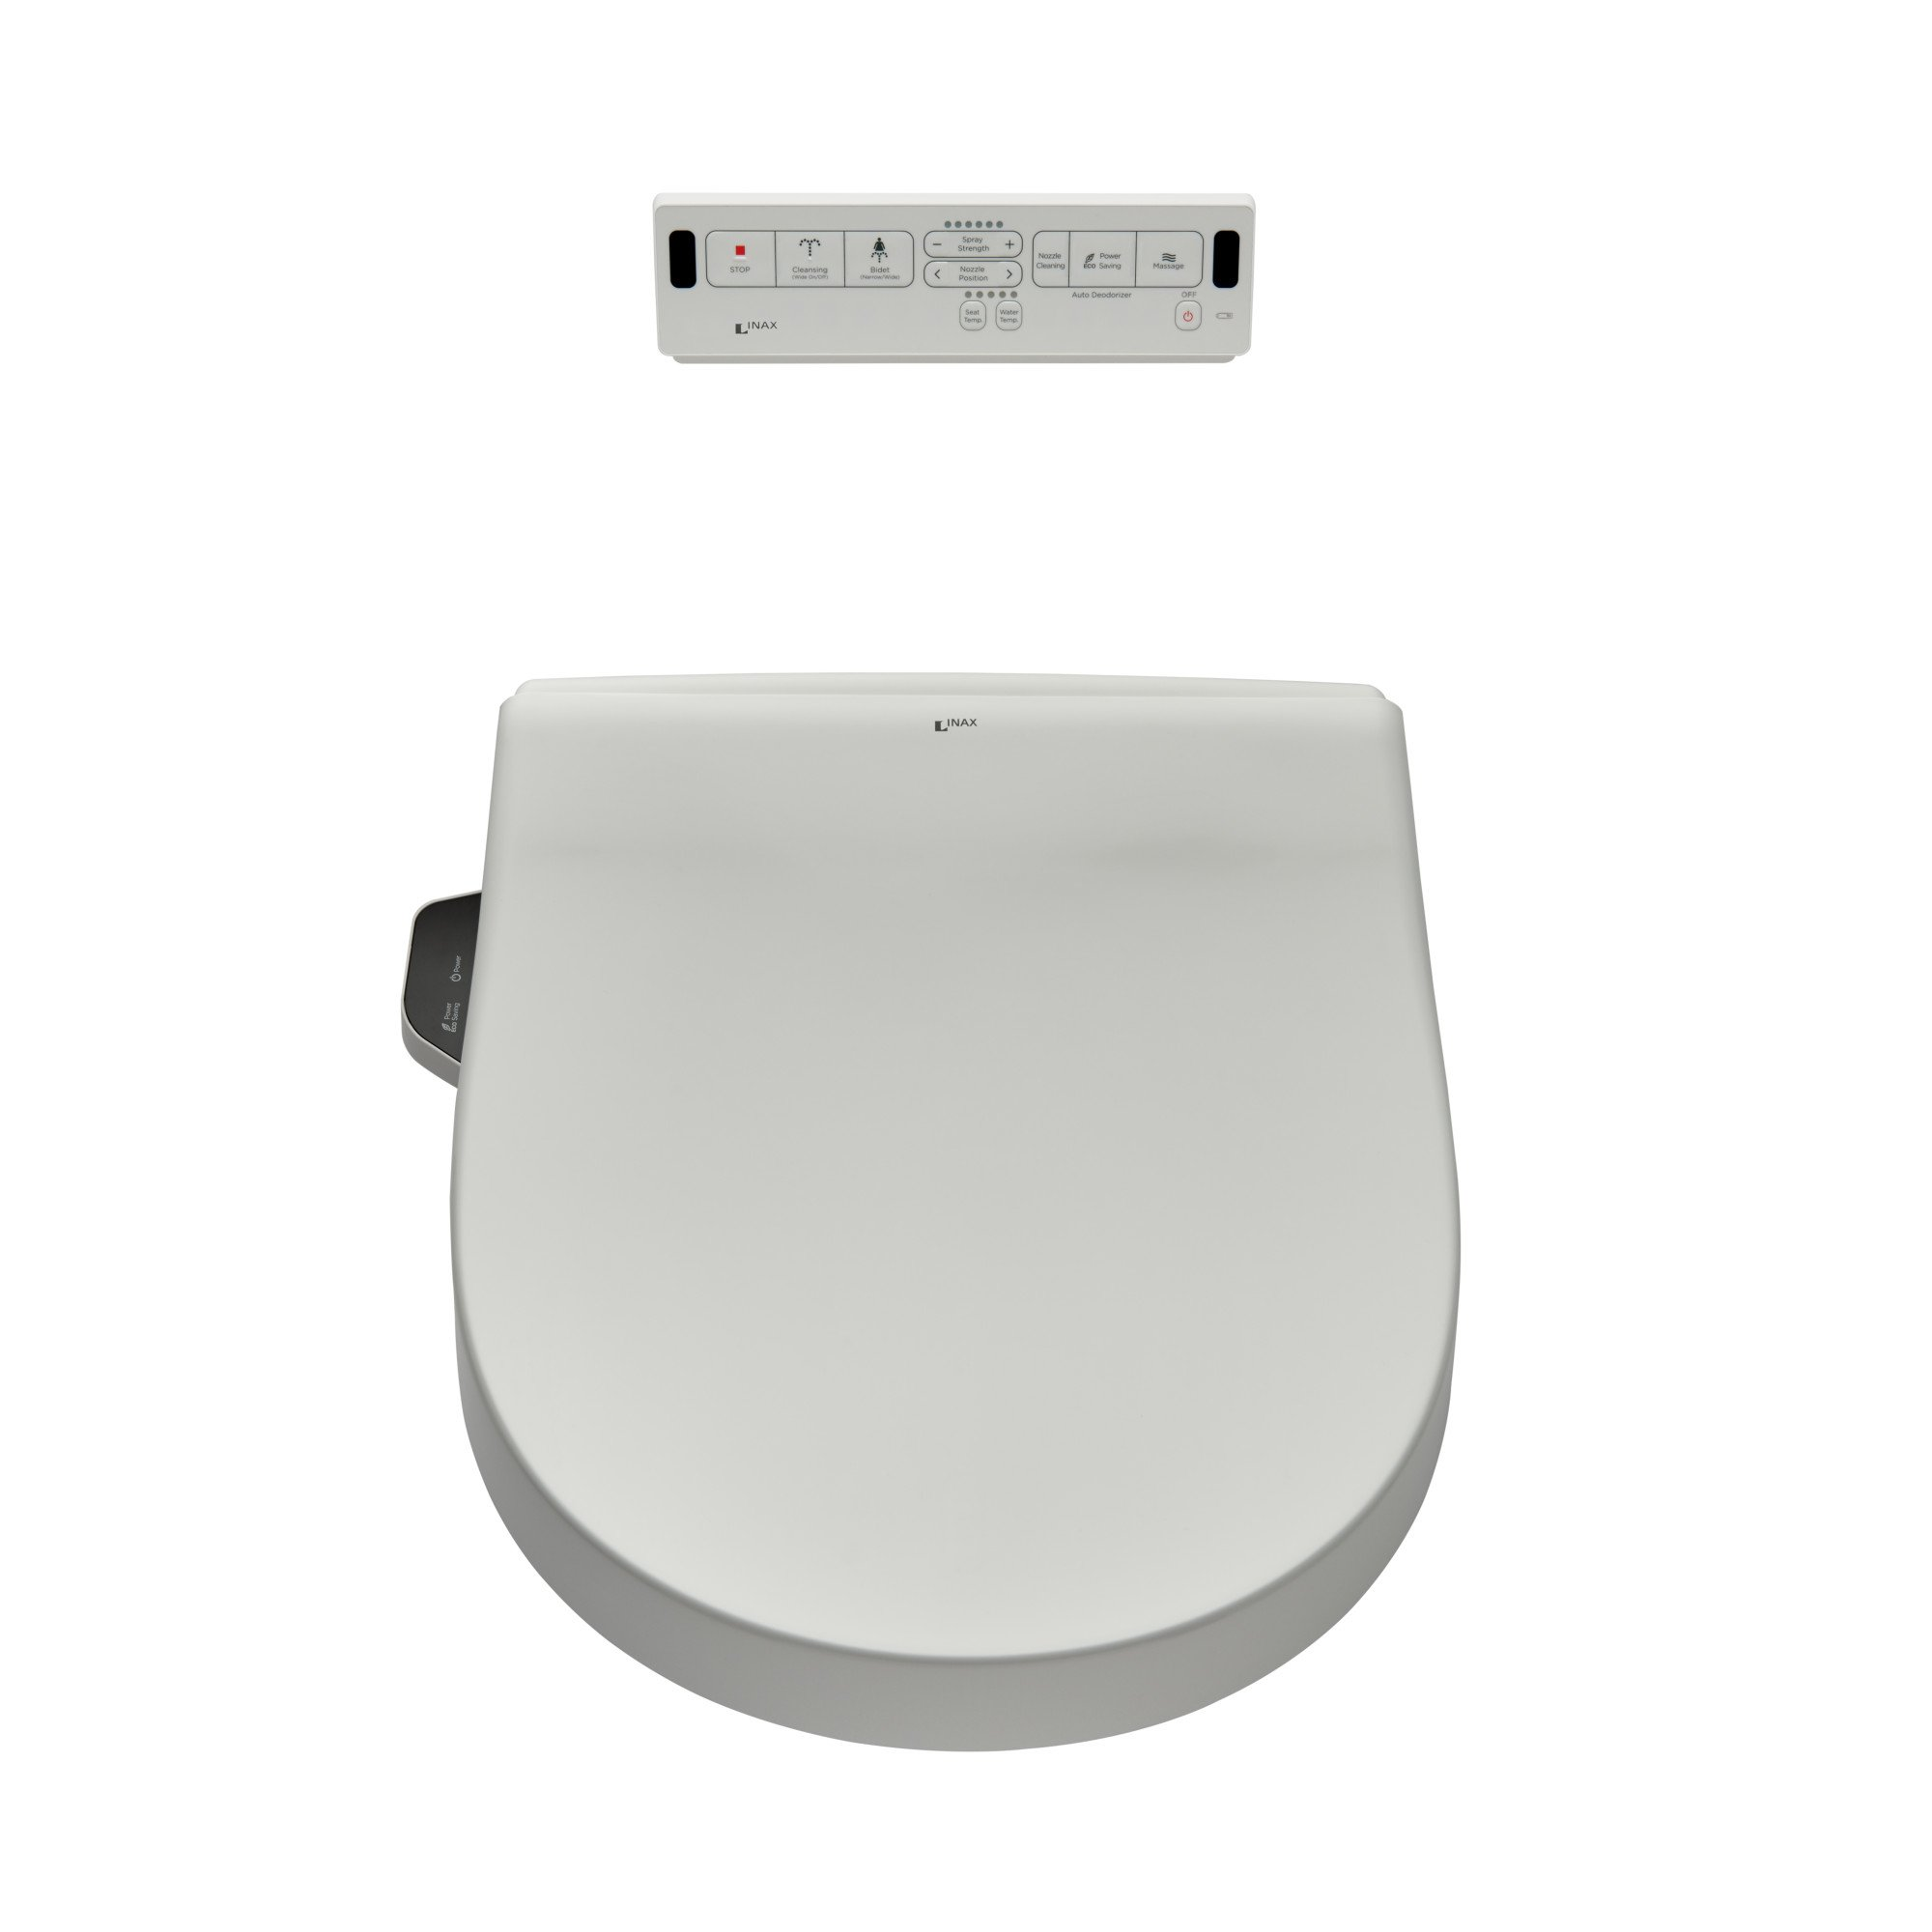 INAX 8012A70GRC-415 Heated Shower Toilet Bidet Seat with Remote Control + Dual Nozzle, White by INAX (Image #1)